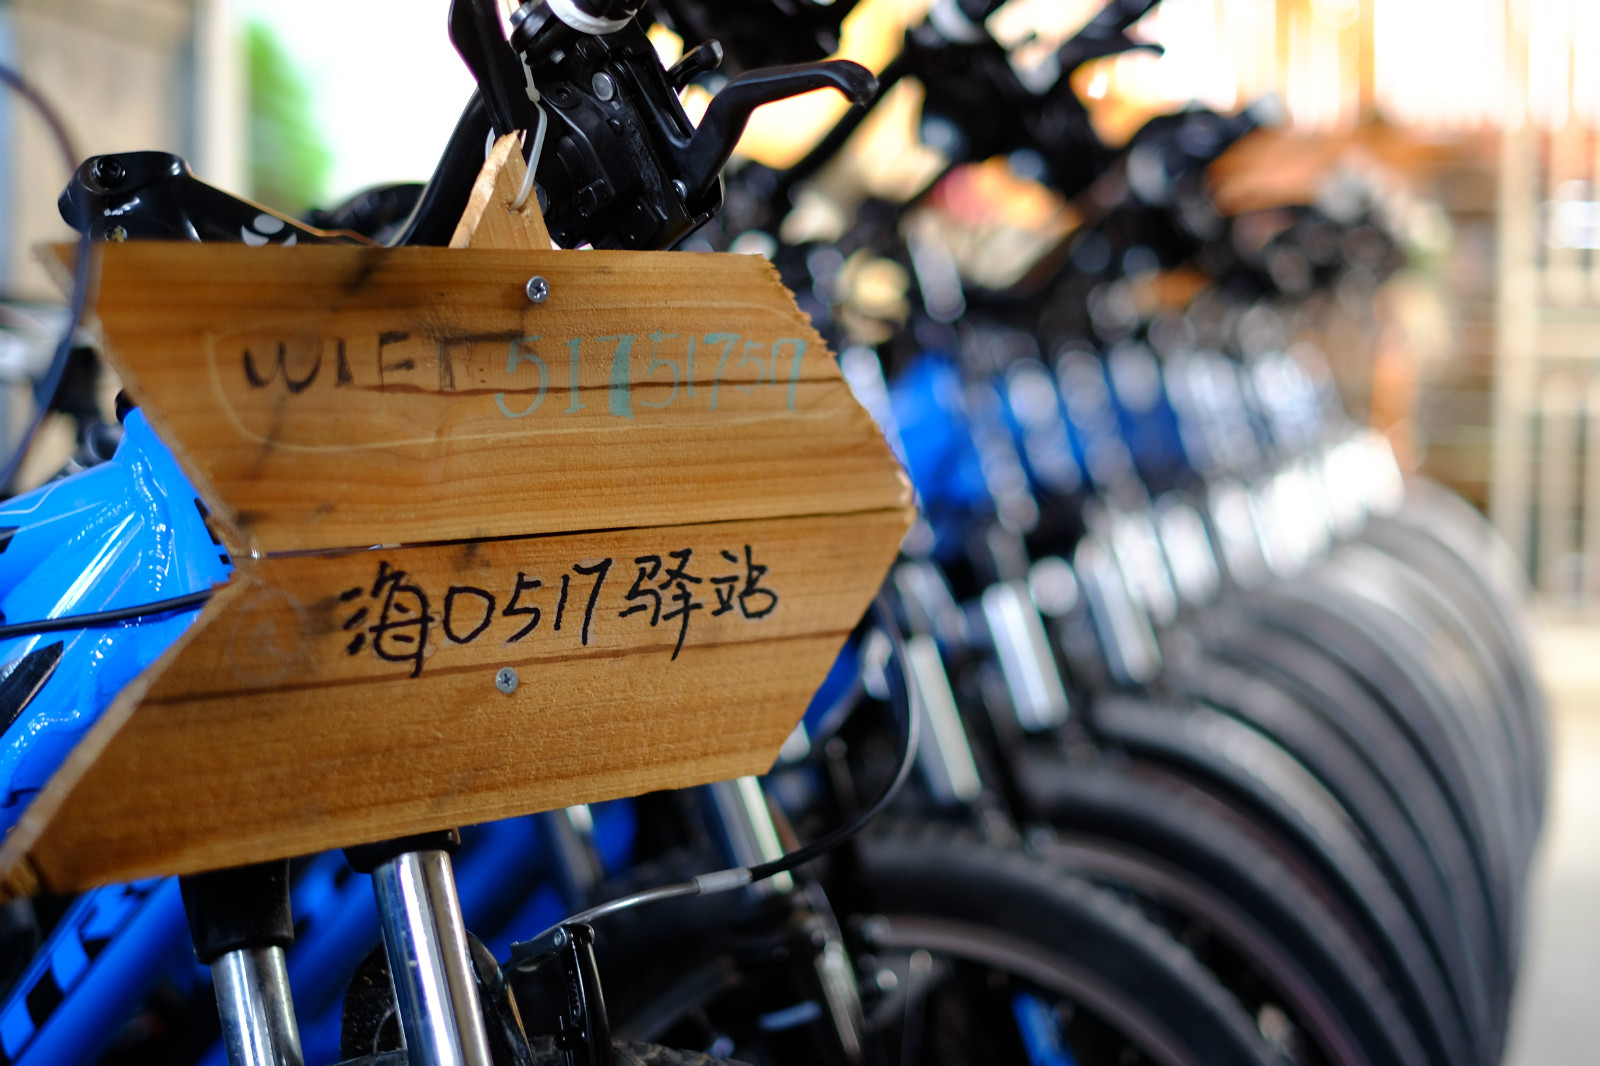 Cycling in Hainan